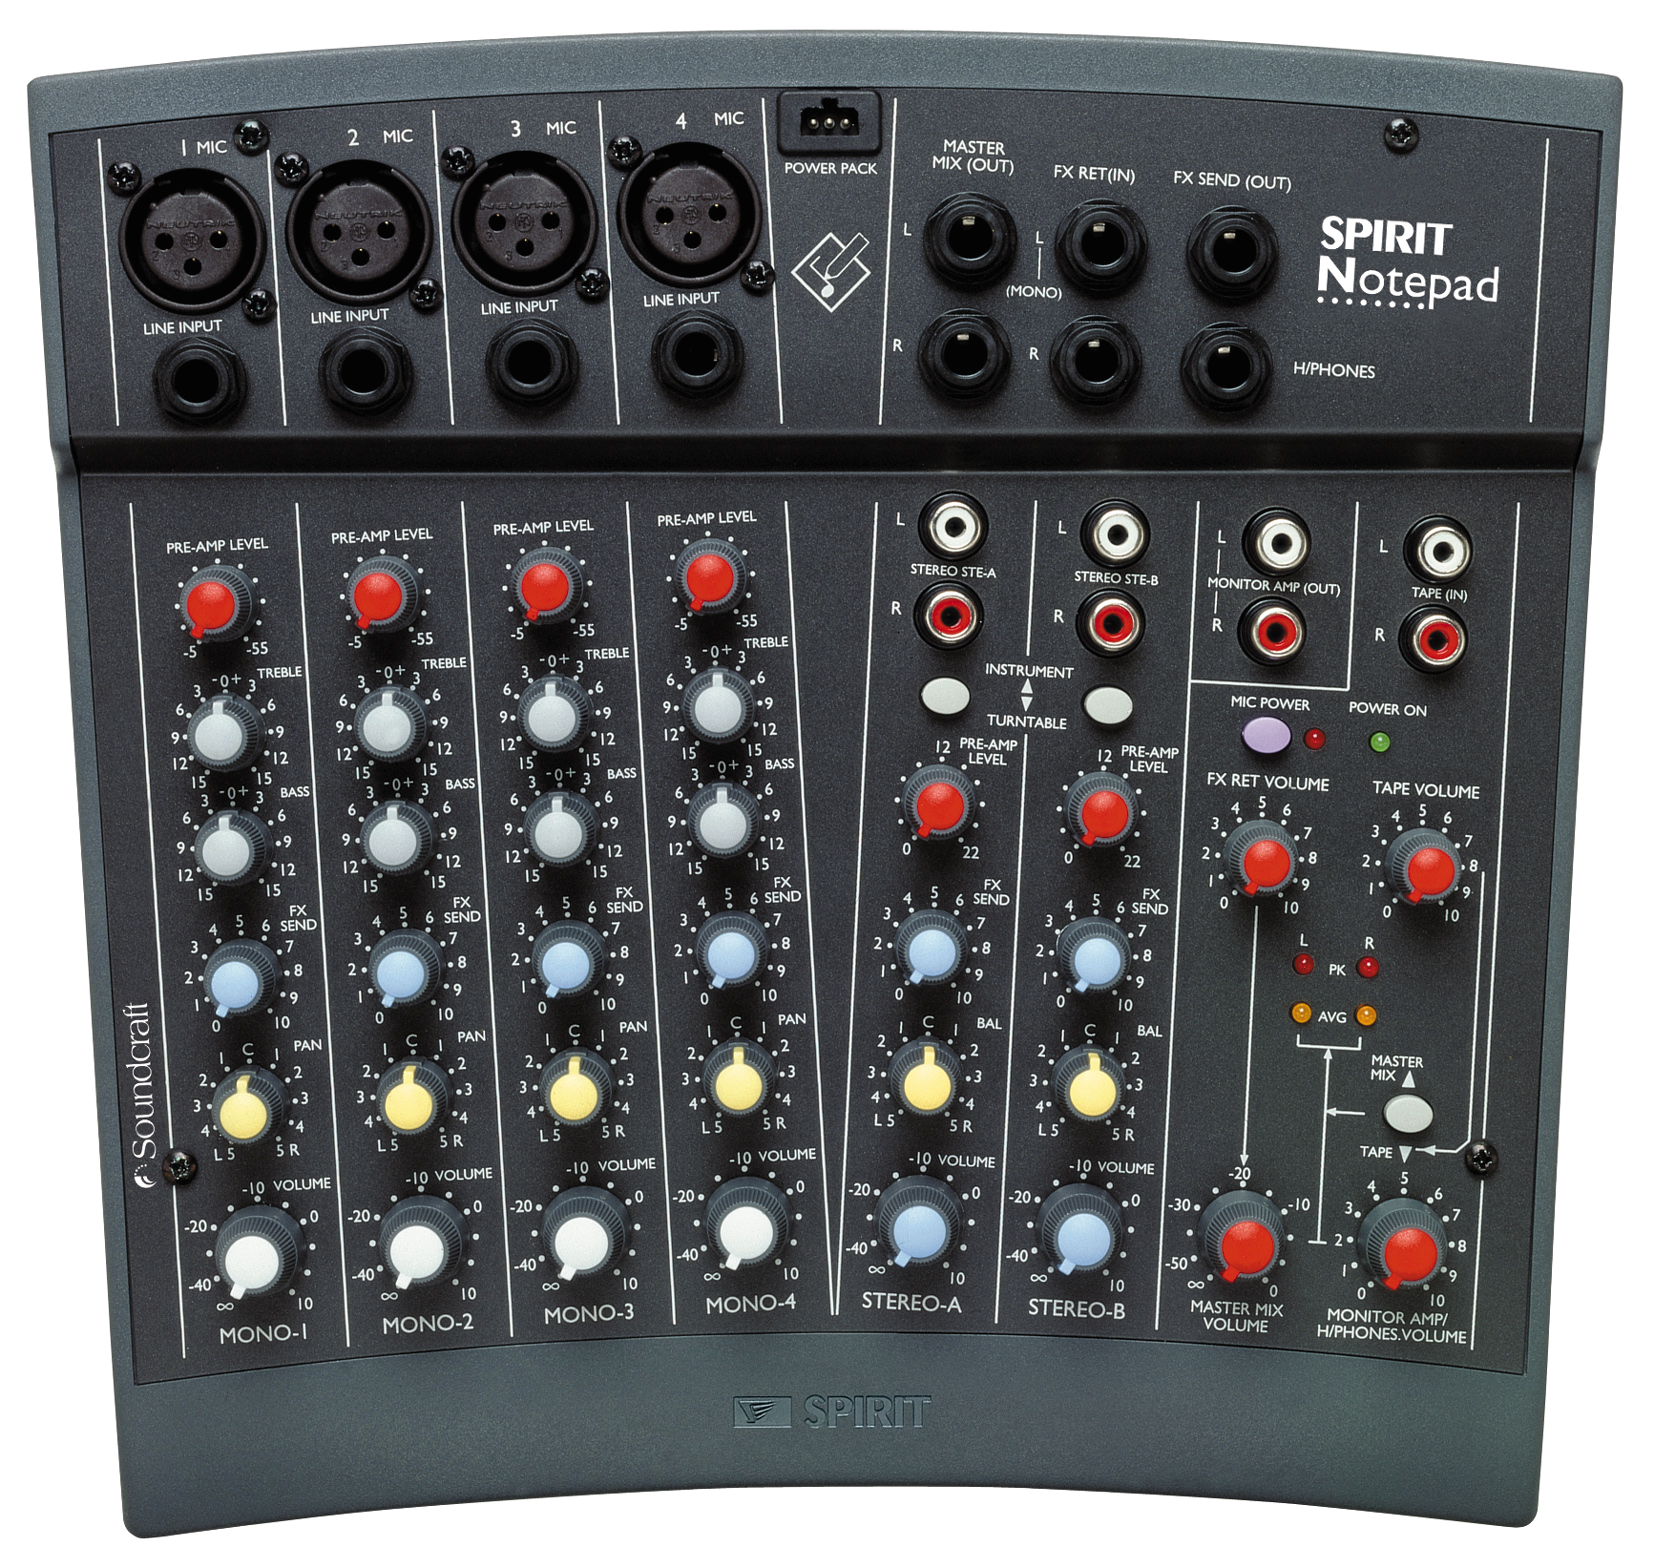 Soundcraft Spirit Notepad Audio Mixer